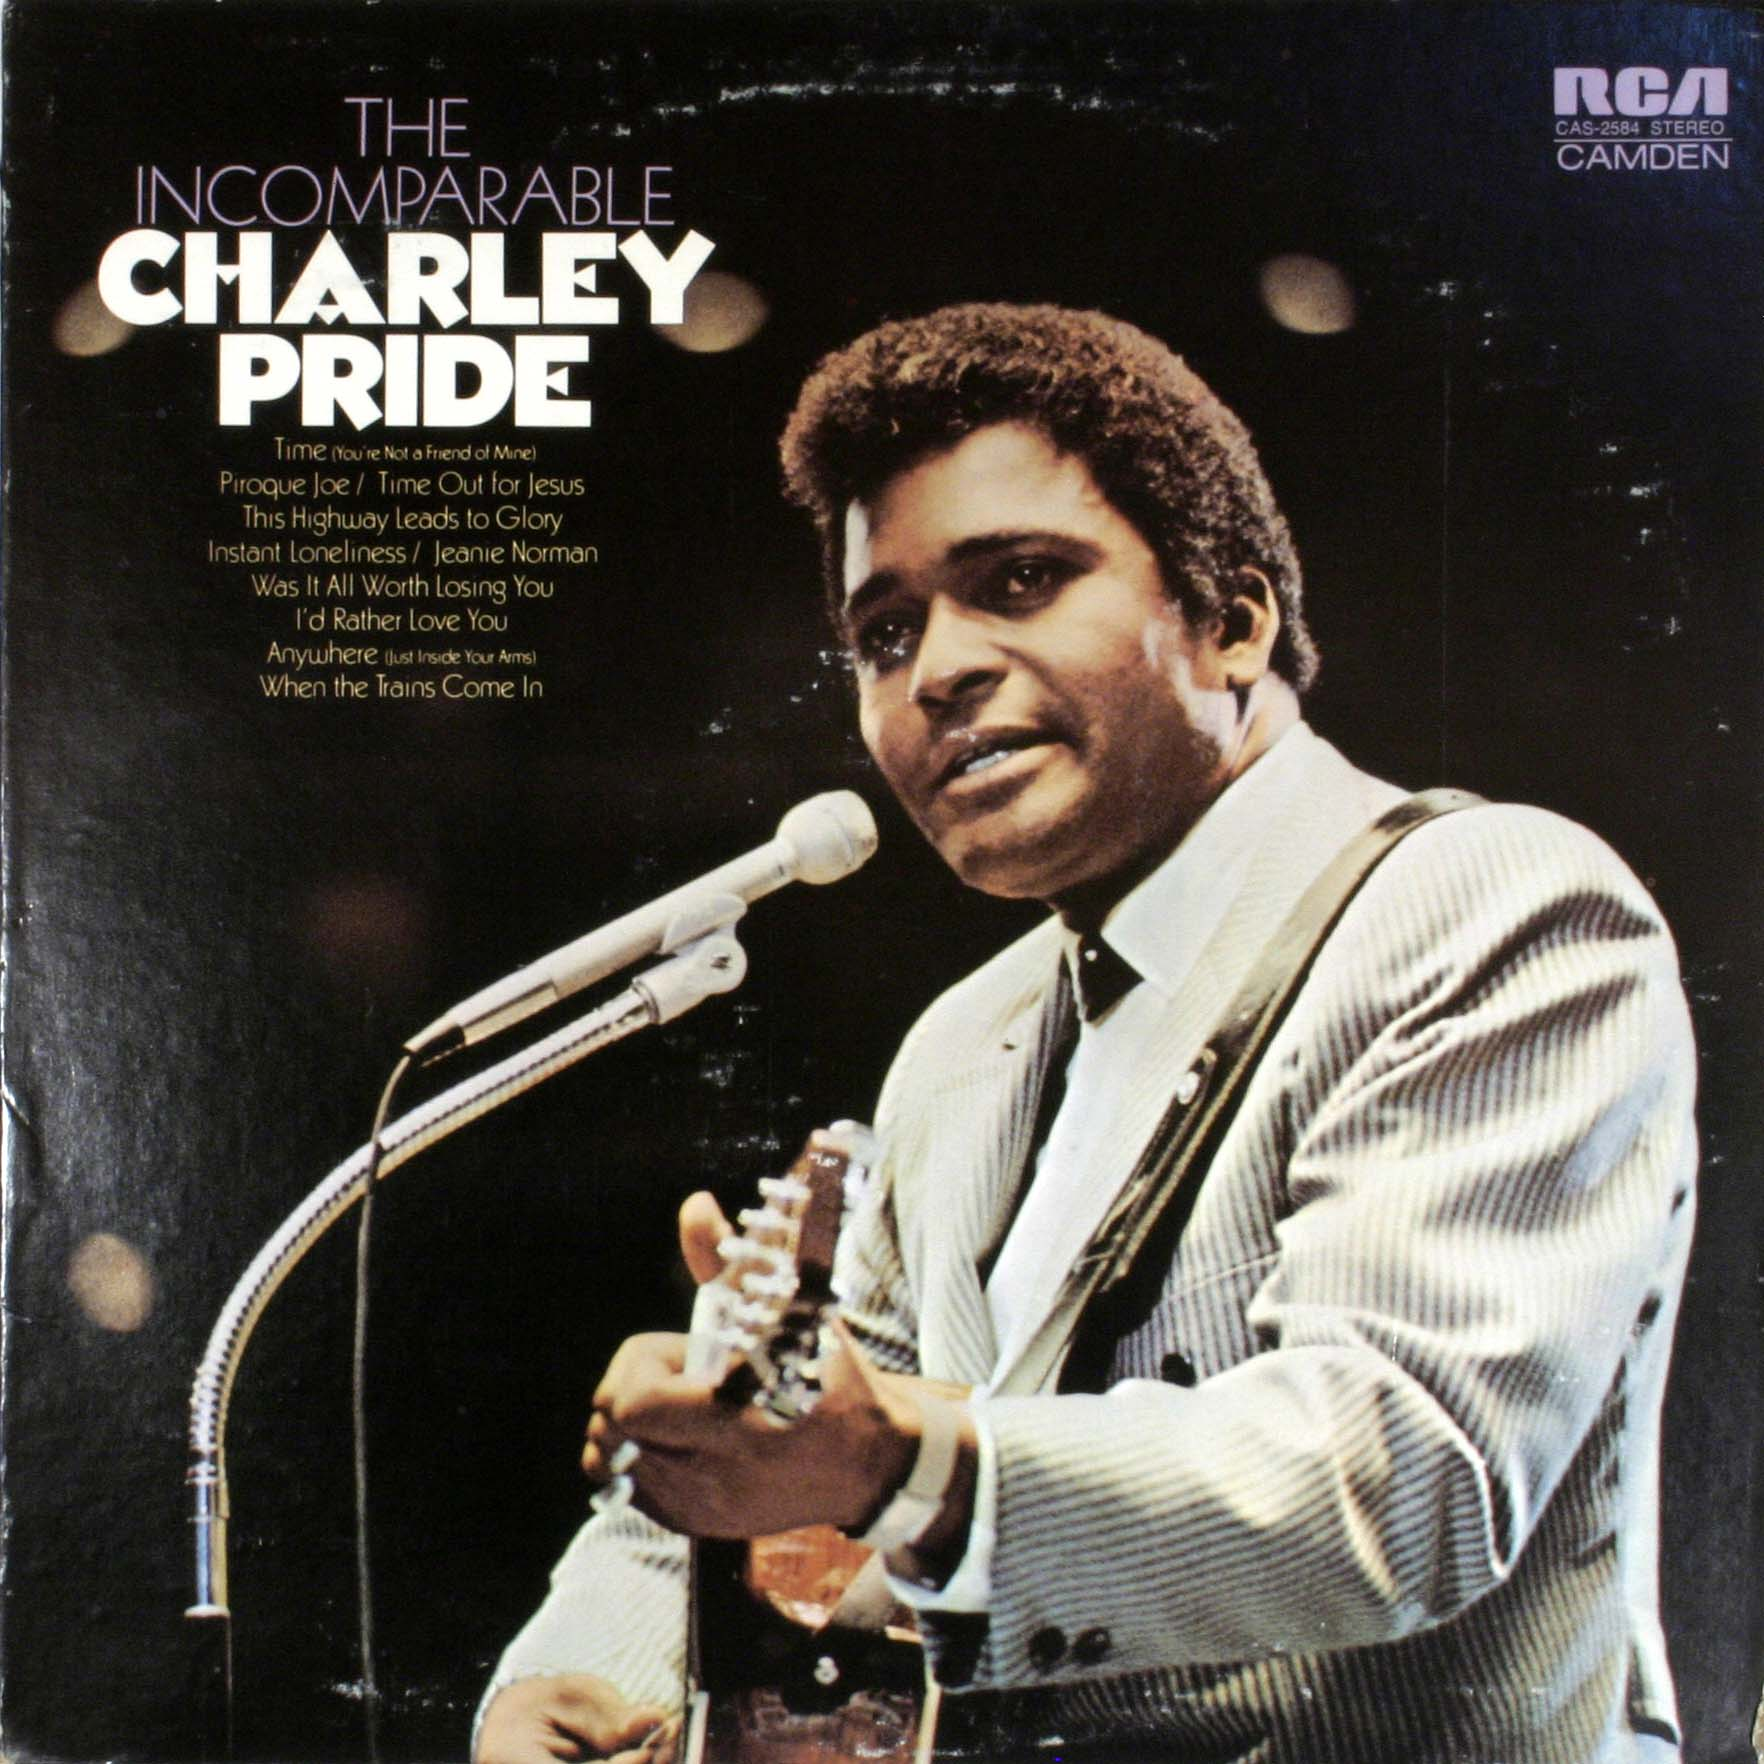 Charlie Pride Hits Awesome charley pride the incomparable charley pride records, lps, vinyl